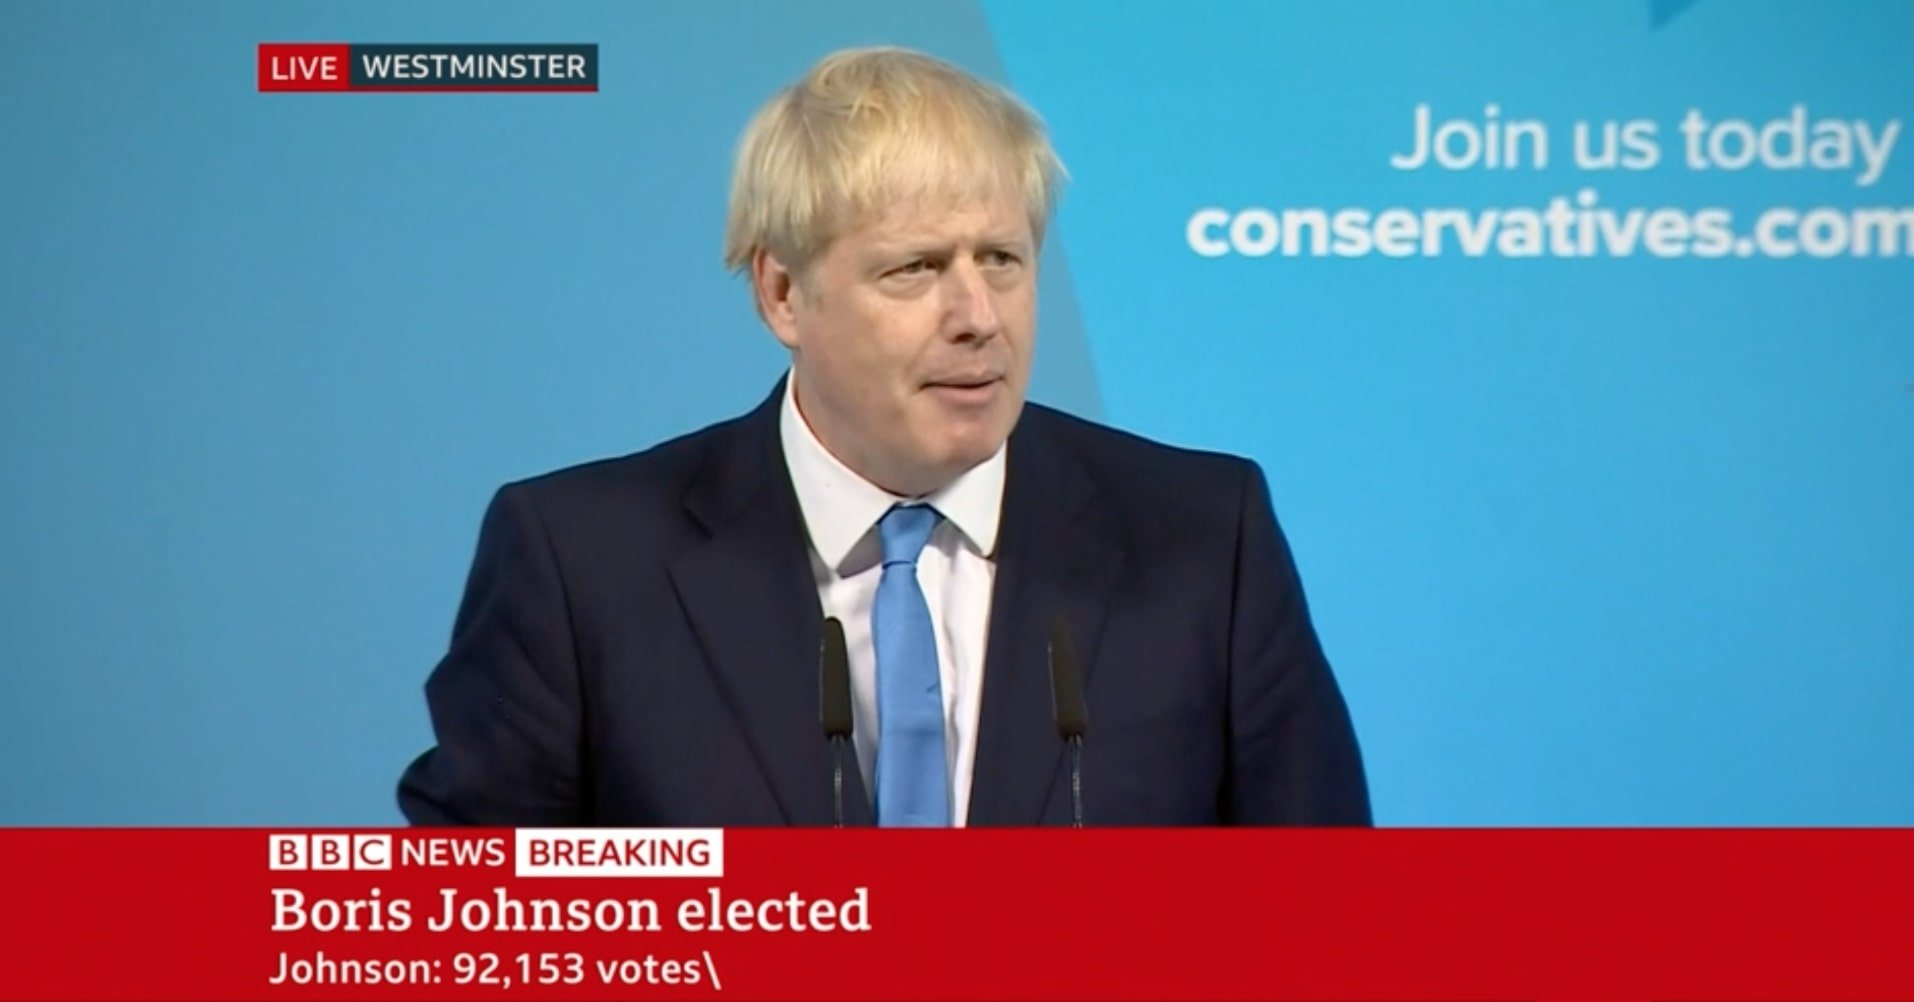 What does Boris Johnson really think about immigration?